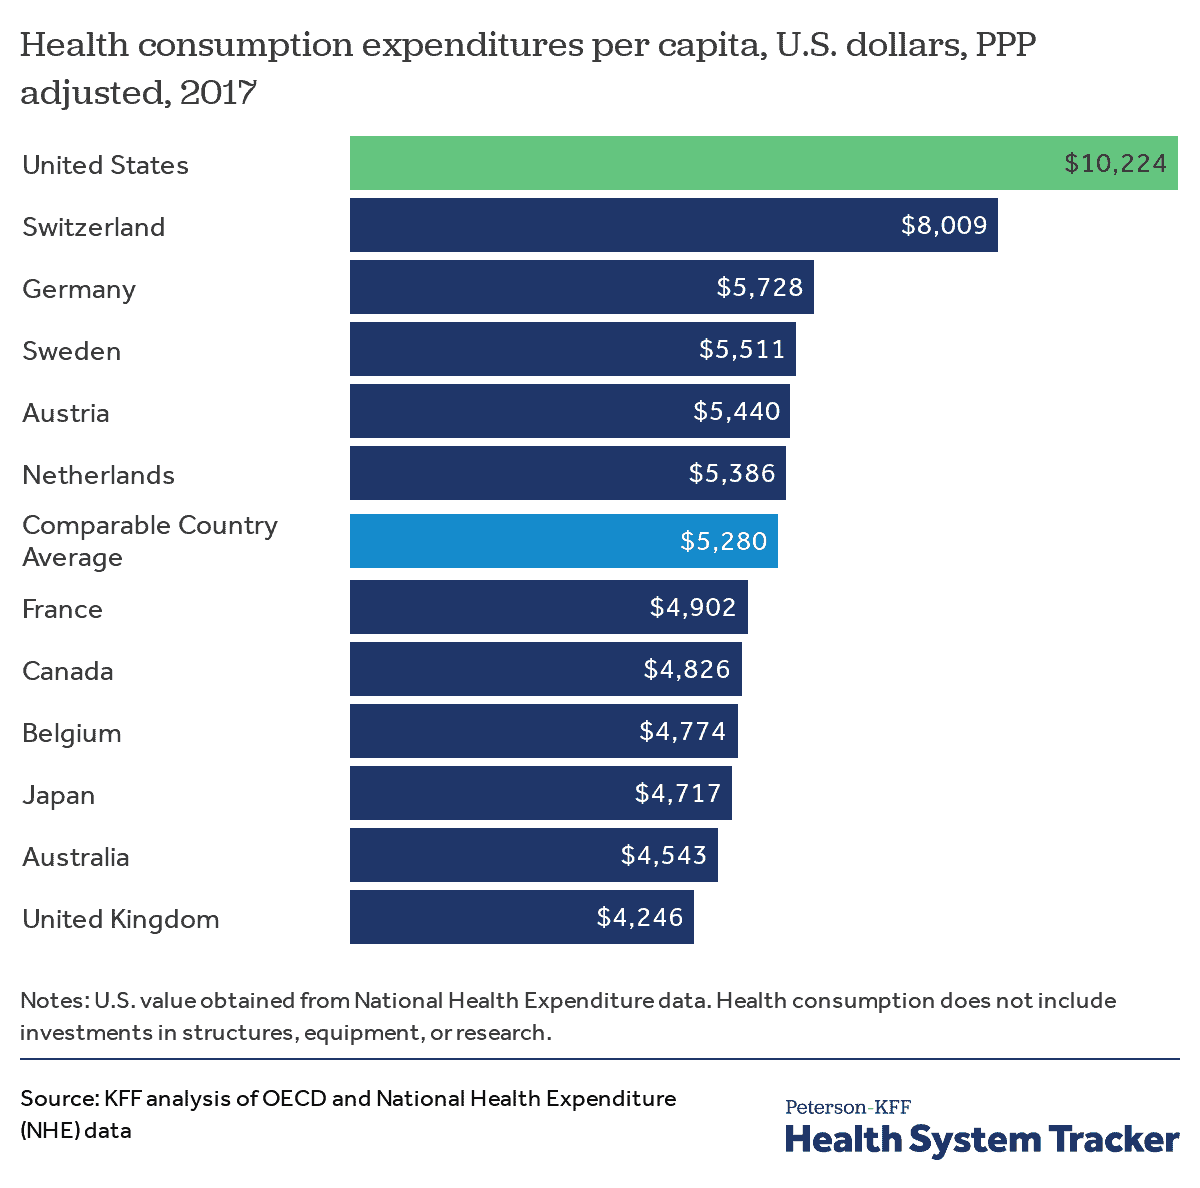 Health consumption expenditures per capita